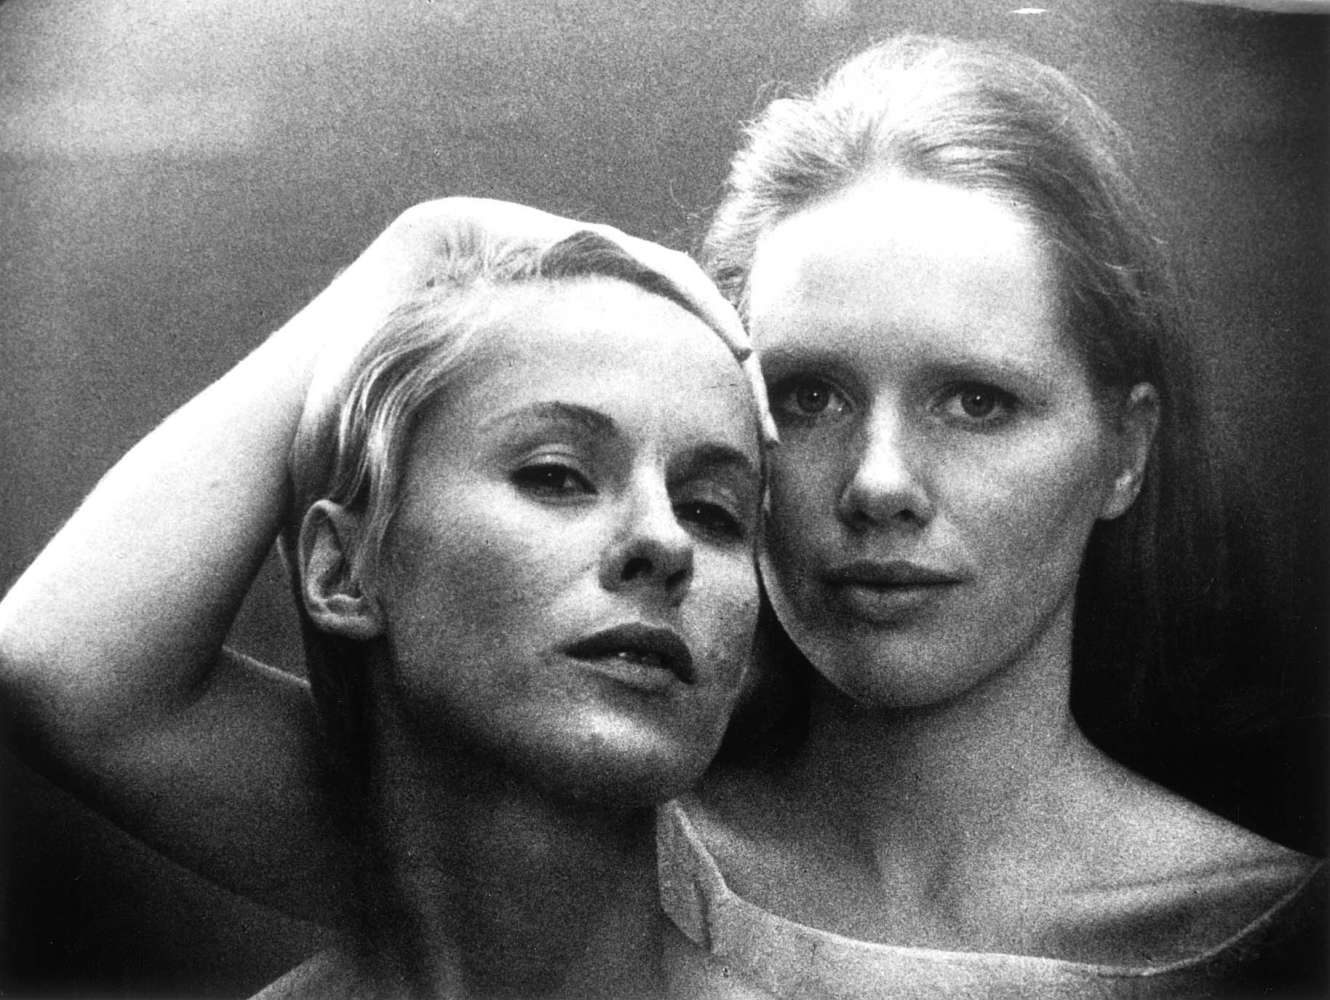 Promo shot from film Persona - head shot of two women one holding the other's hair